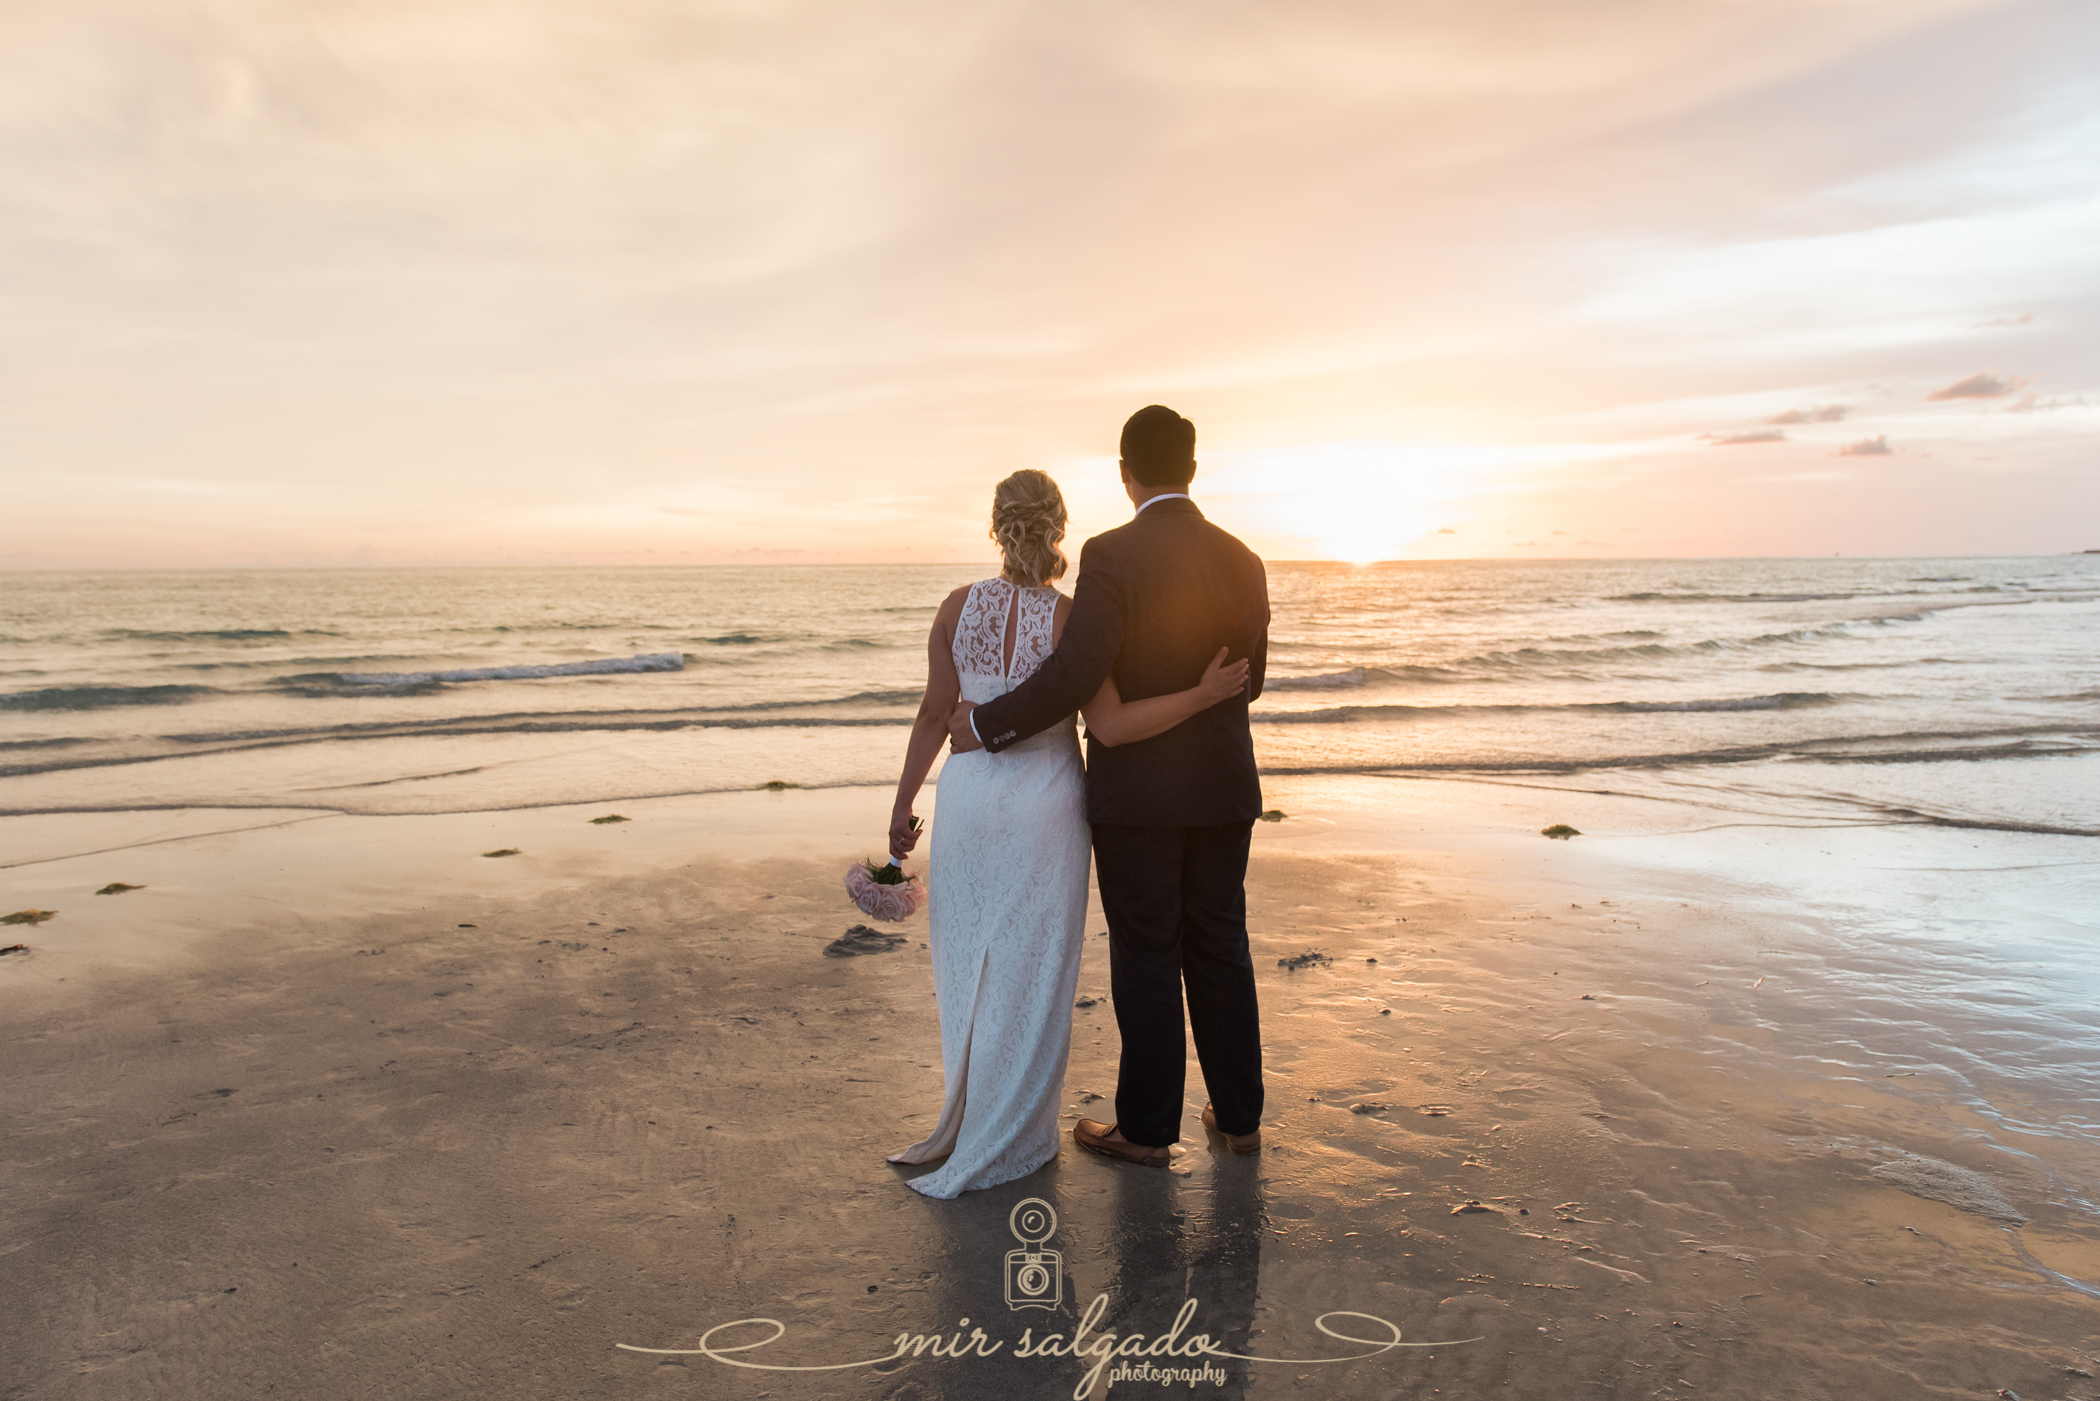 sunset-wedding-portrait, sunset-wedding-pictures, sunset-bride-and-groom, beach-sunset-photography, stunning-sunset-photography